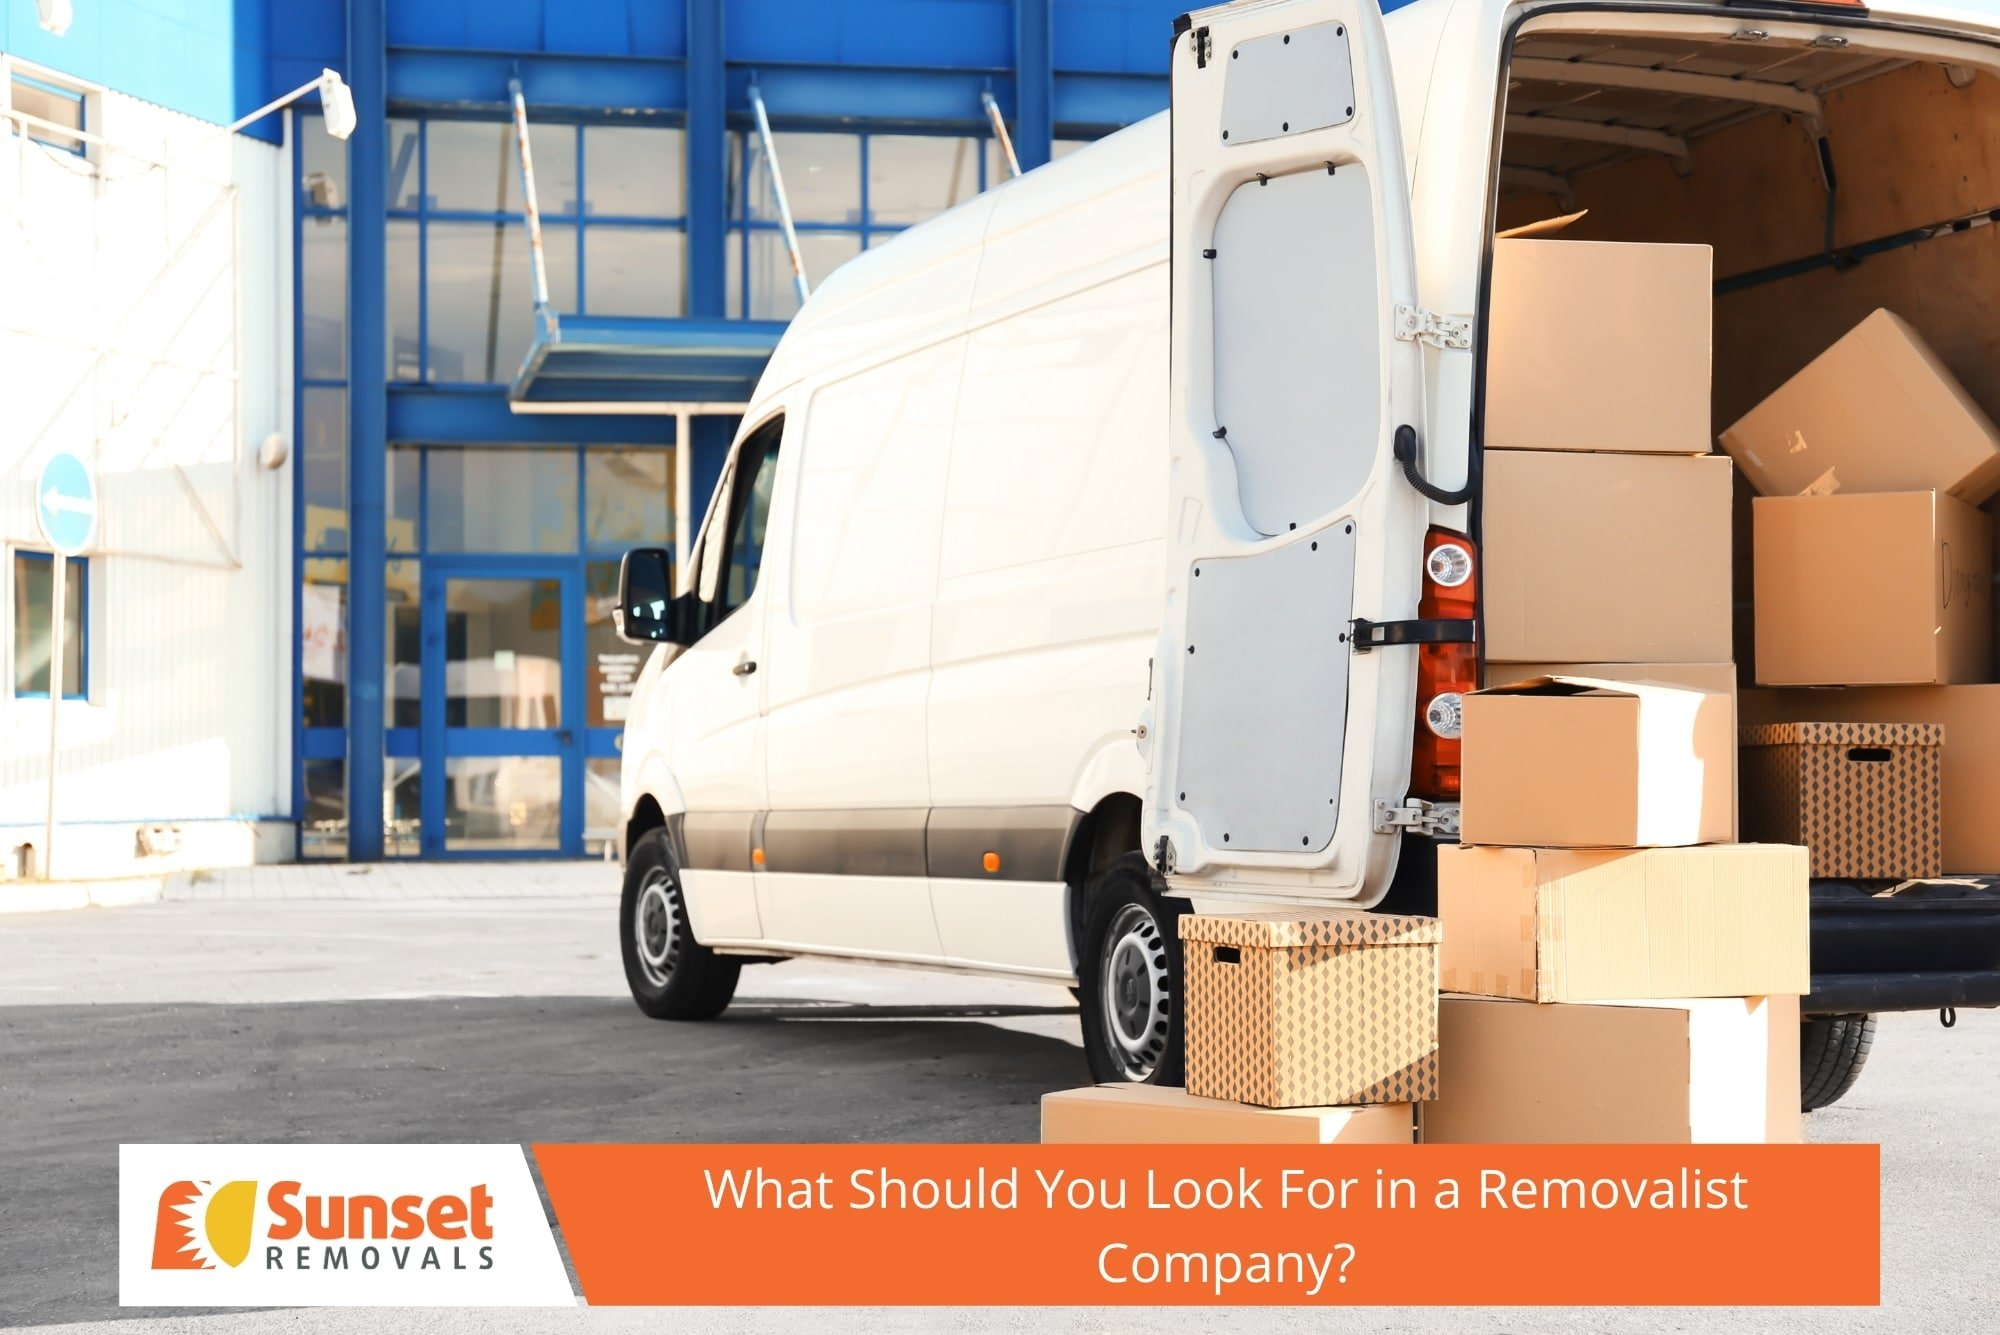 What Should You Look For in a Removalist Company